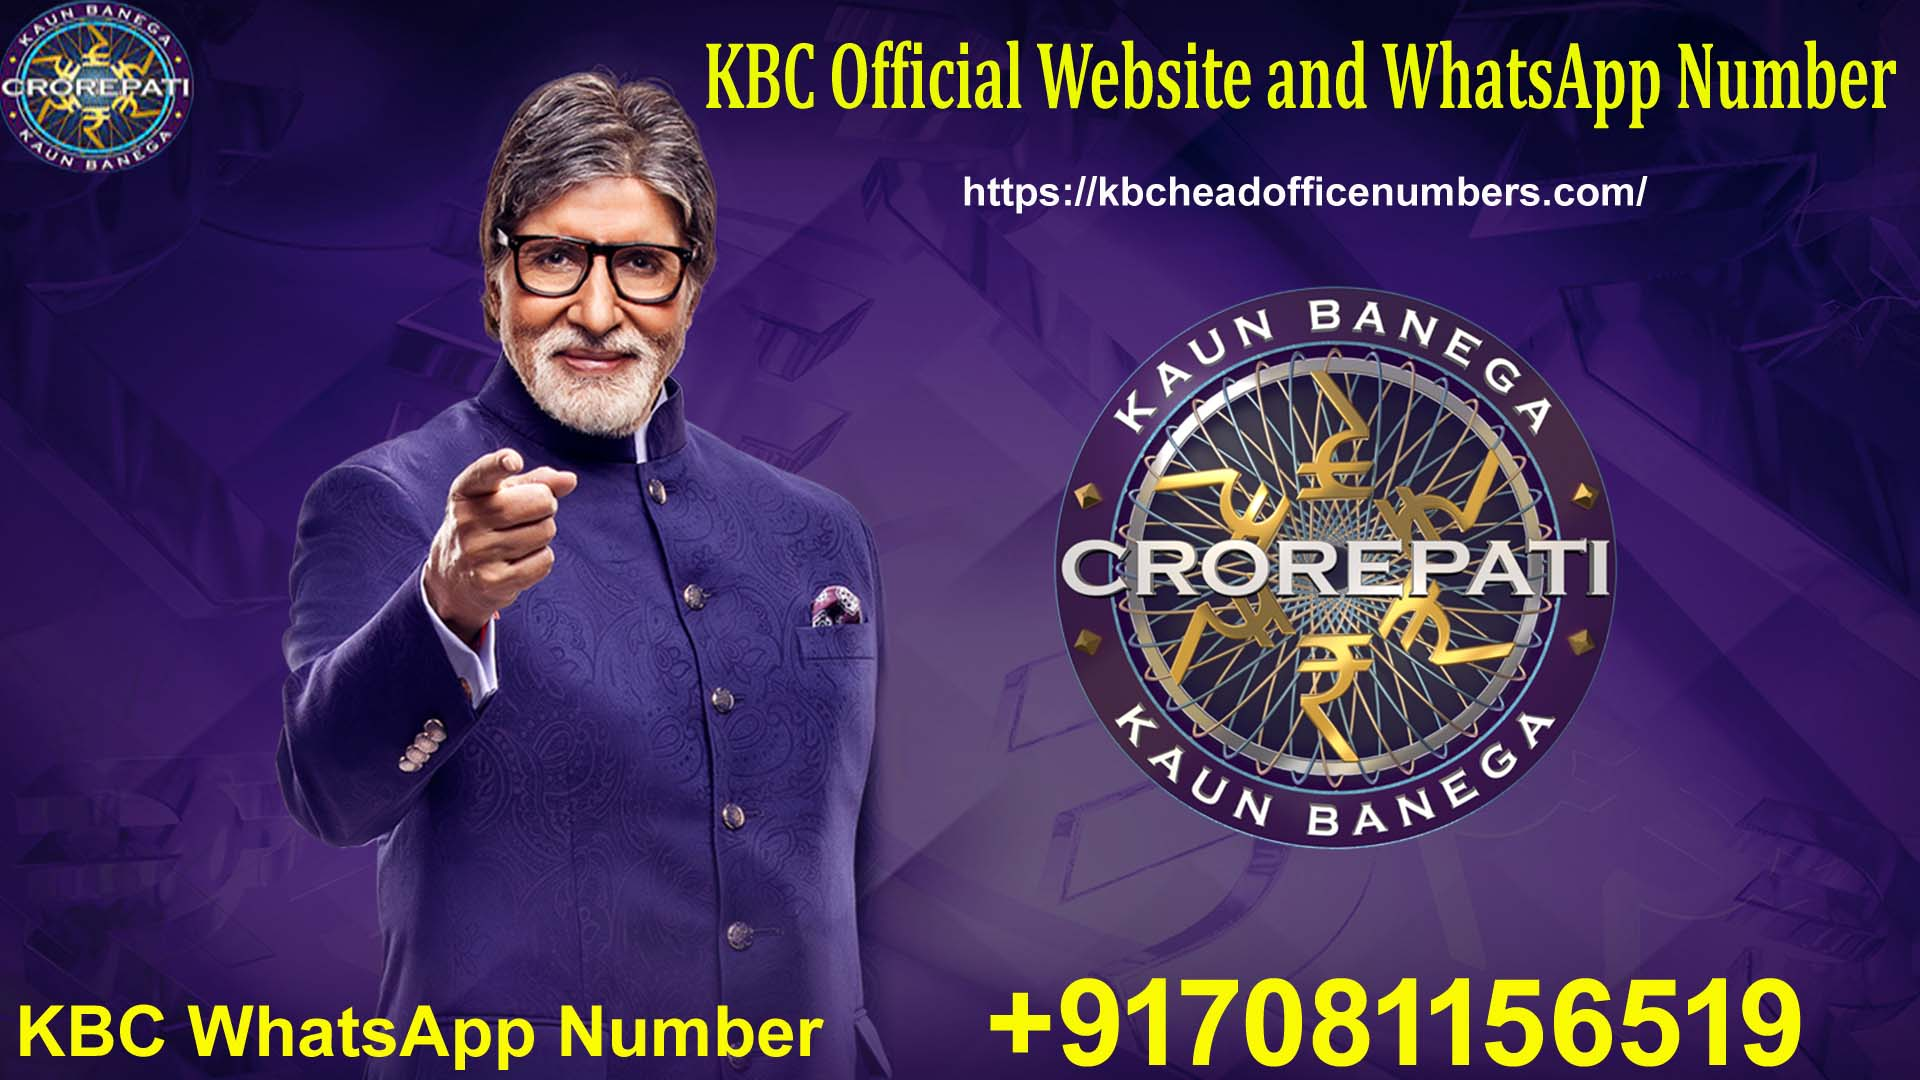 KBC official website and contact number